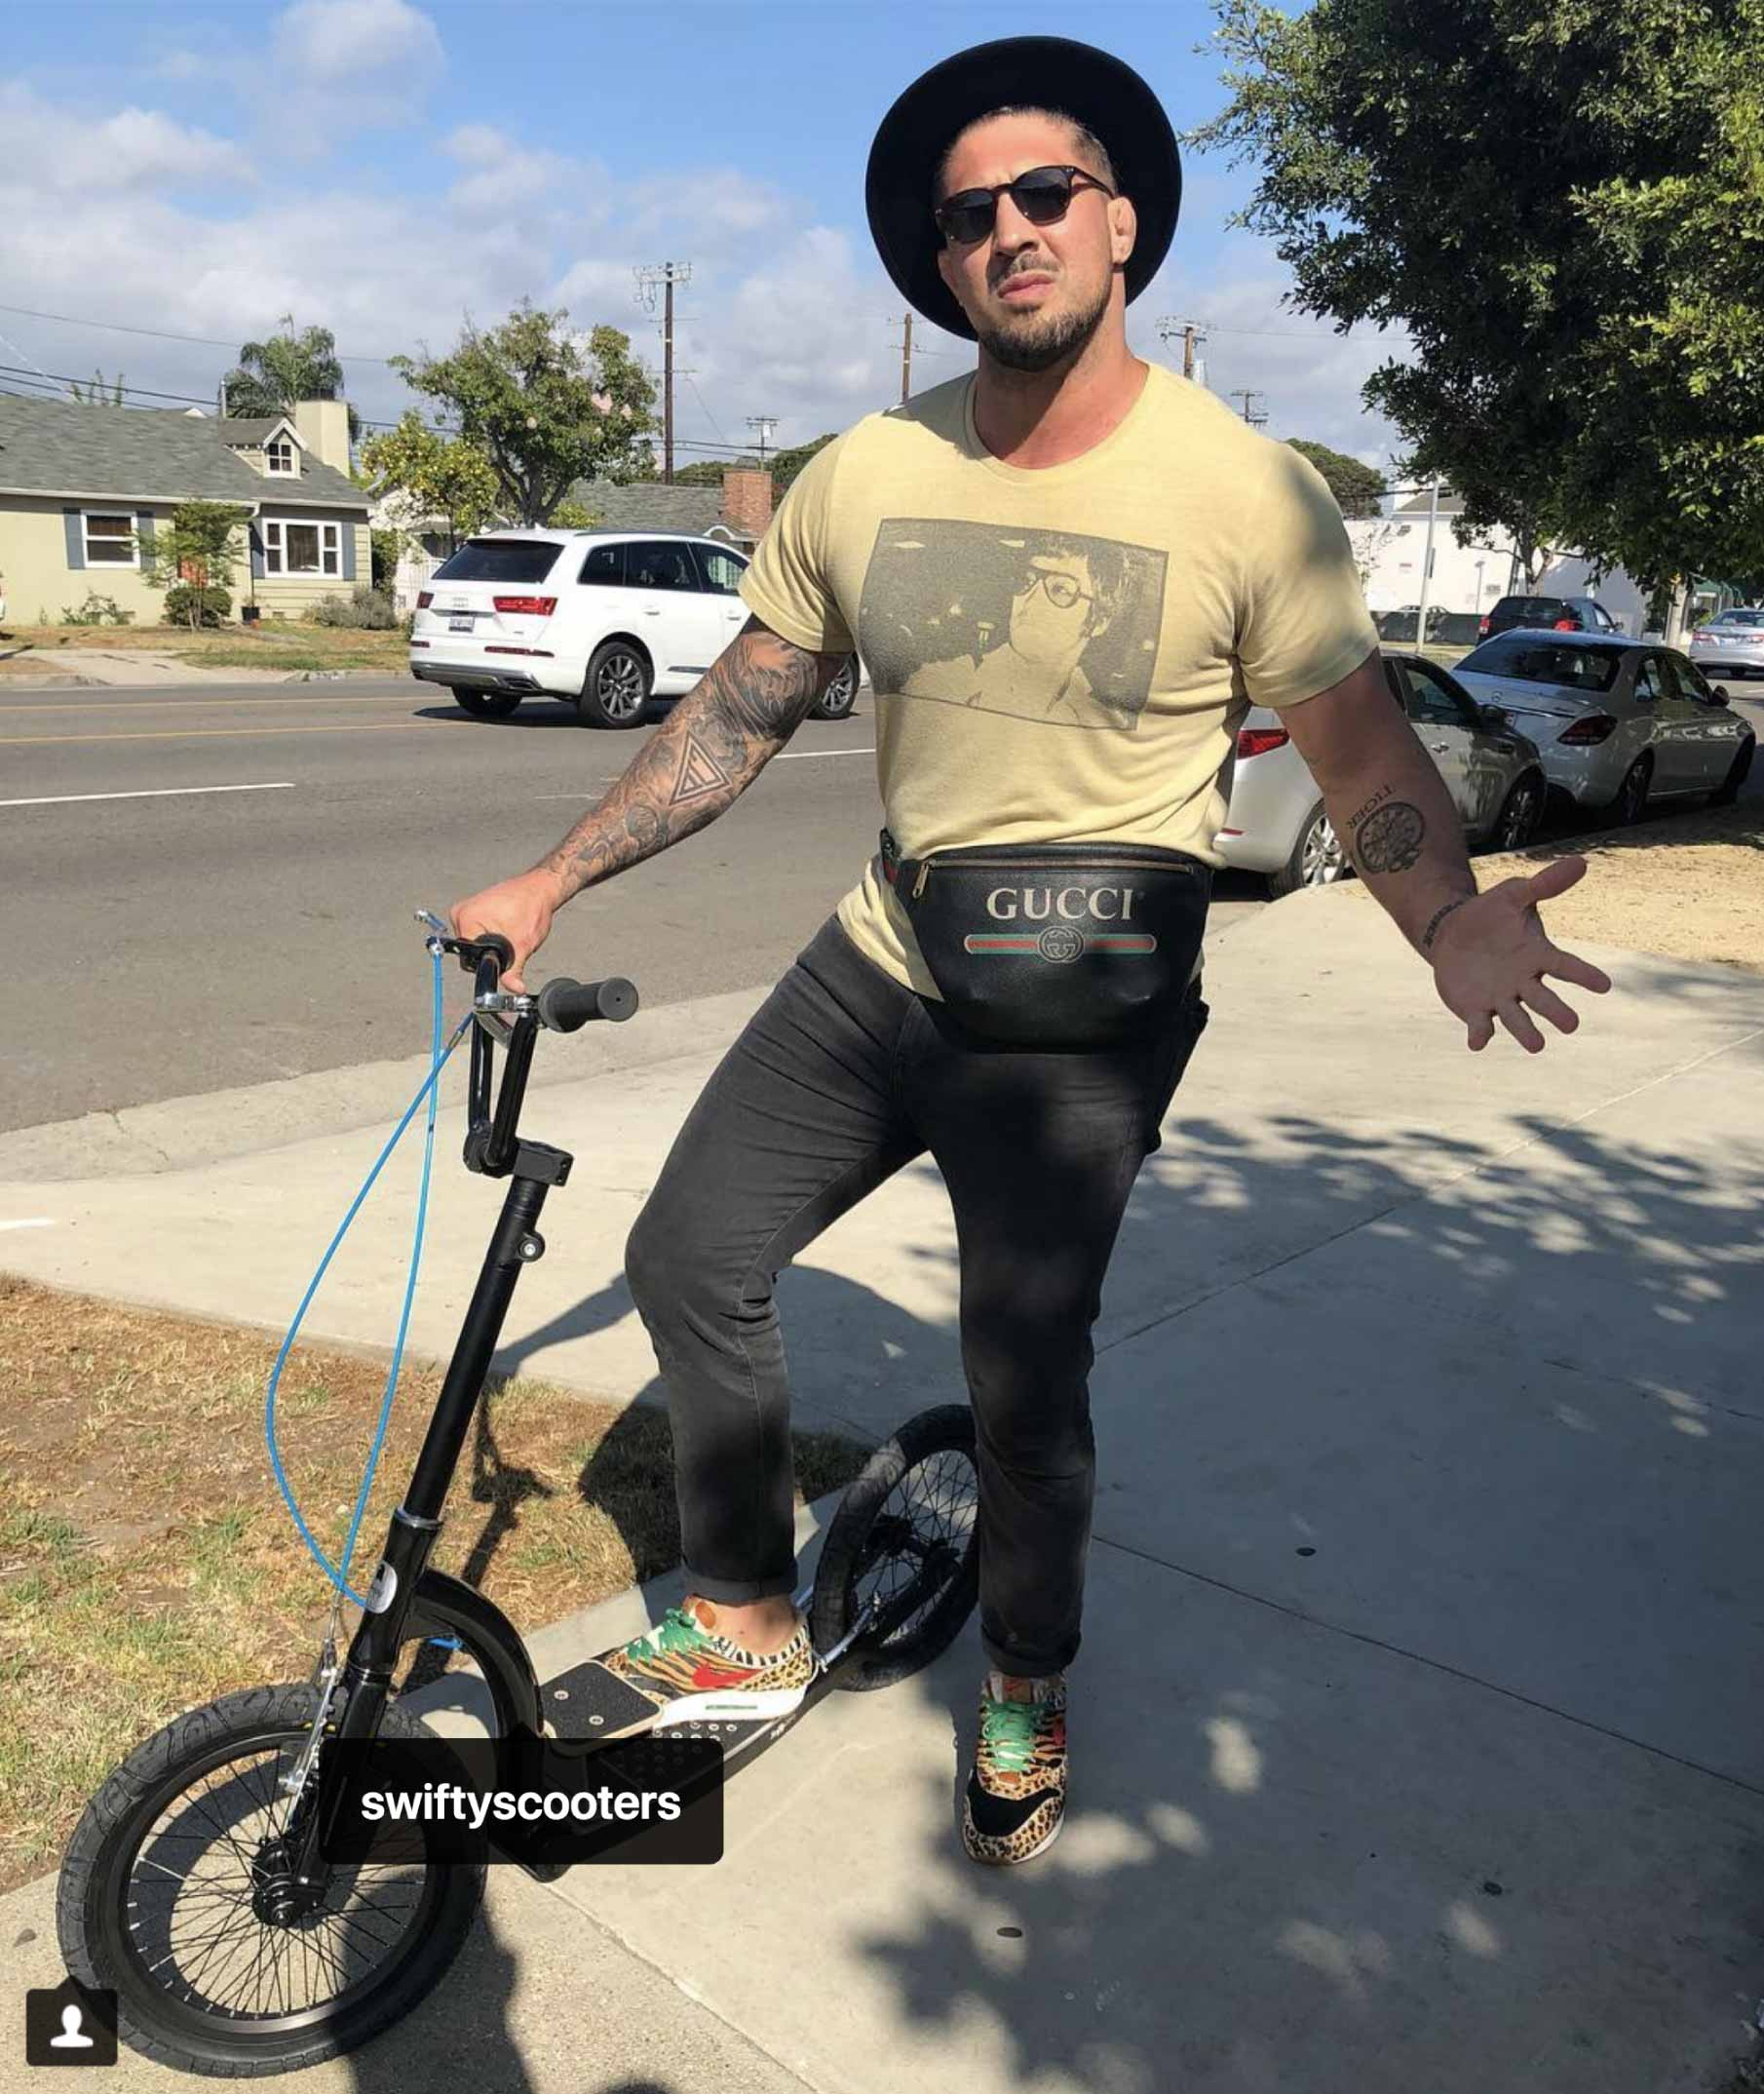 swifty air, adult scooter, kick scooter, swifty scooters, bmx scooter, dirt scooter with big wheels